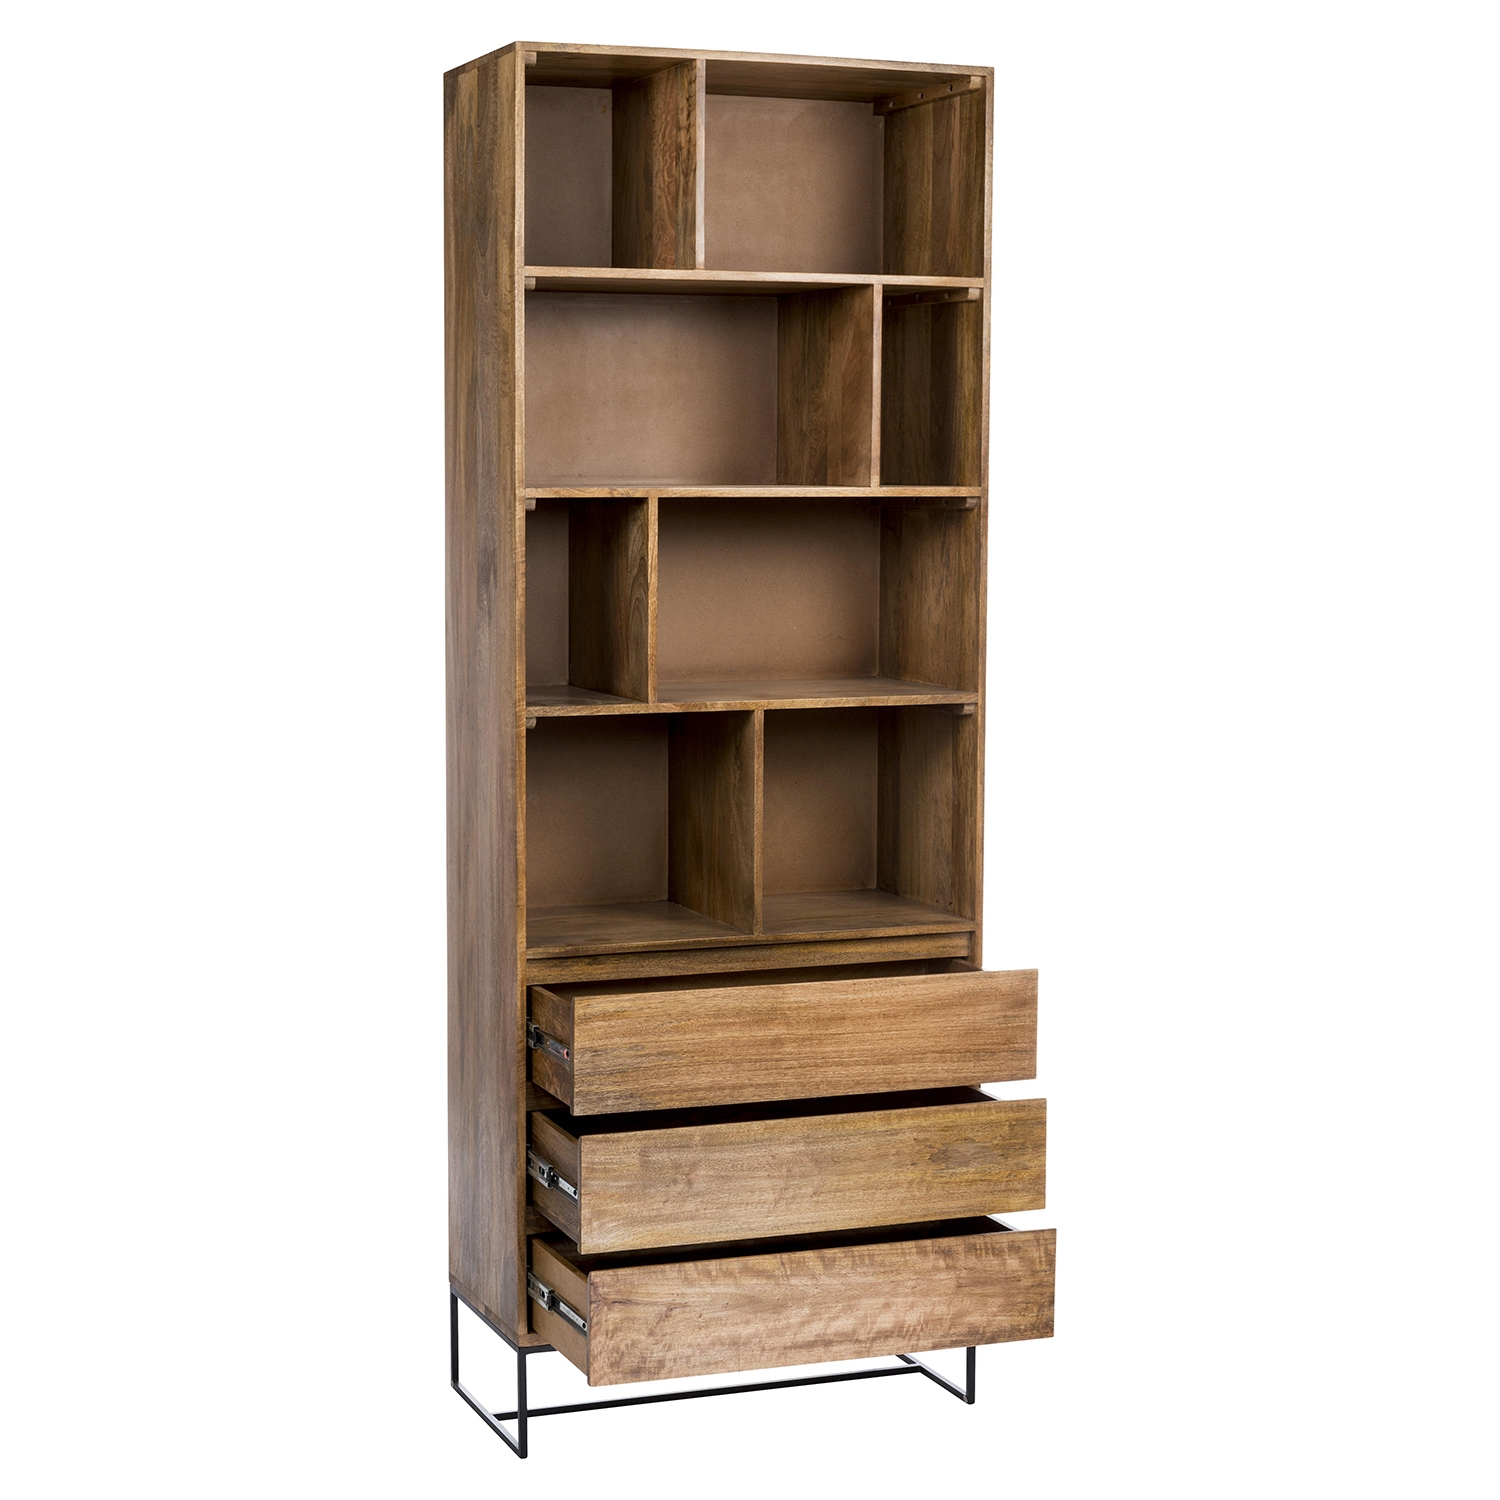 Colvin Shelf with 3 Drawers - MOES-SR-1024-24